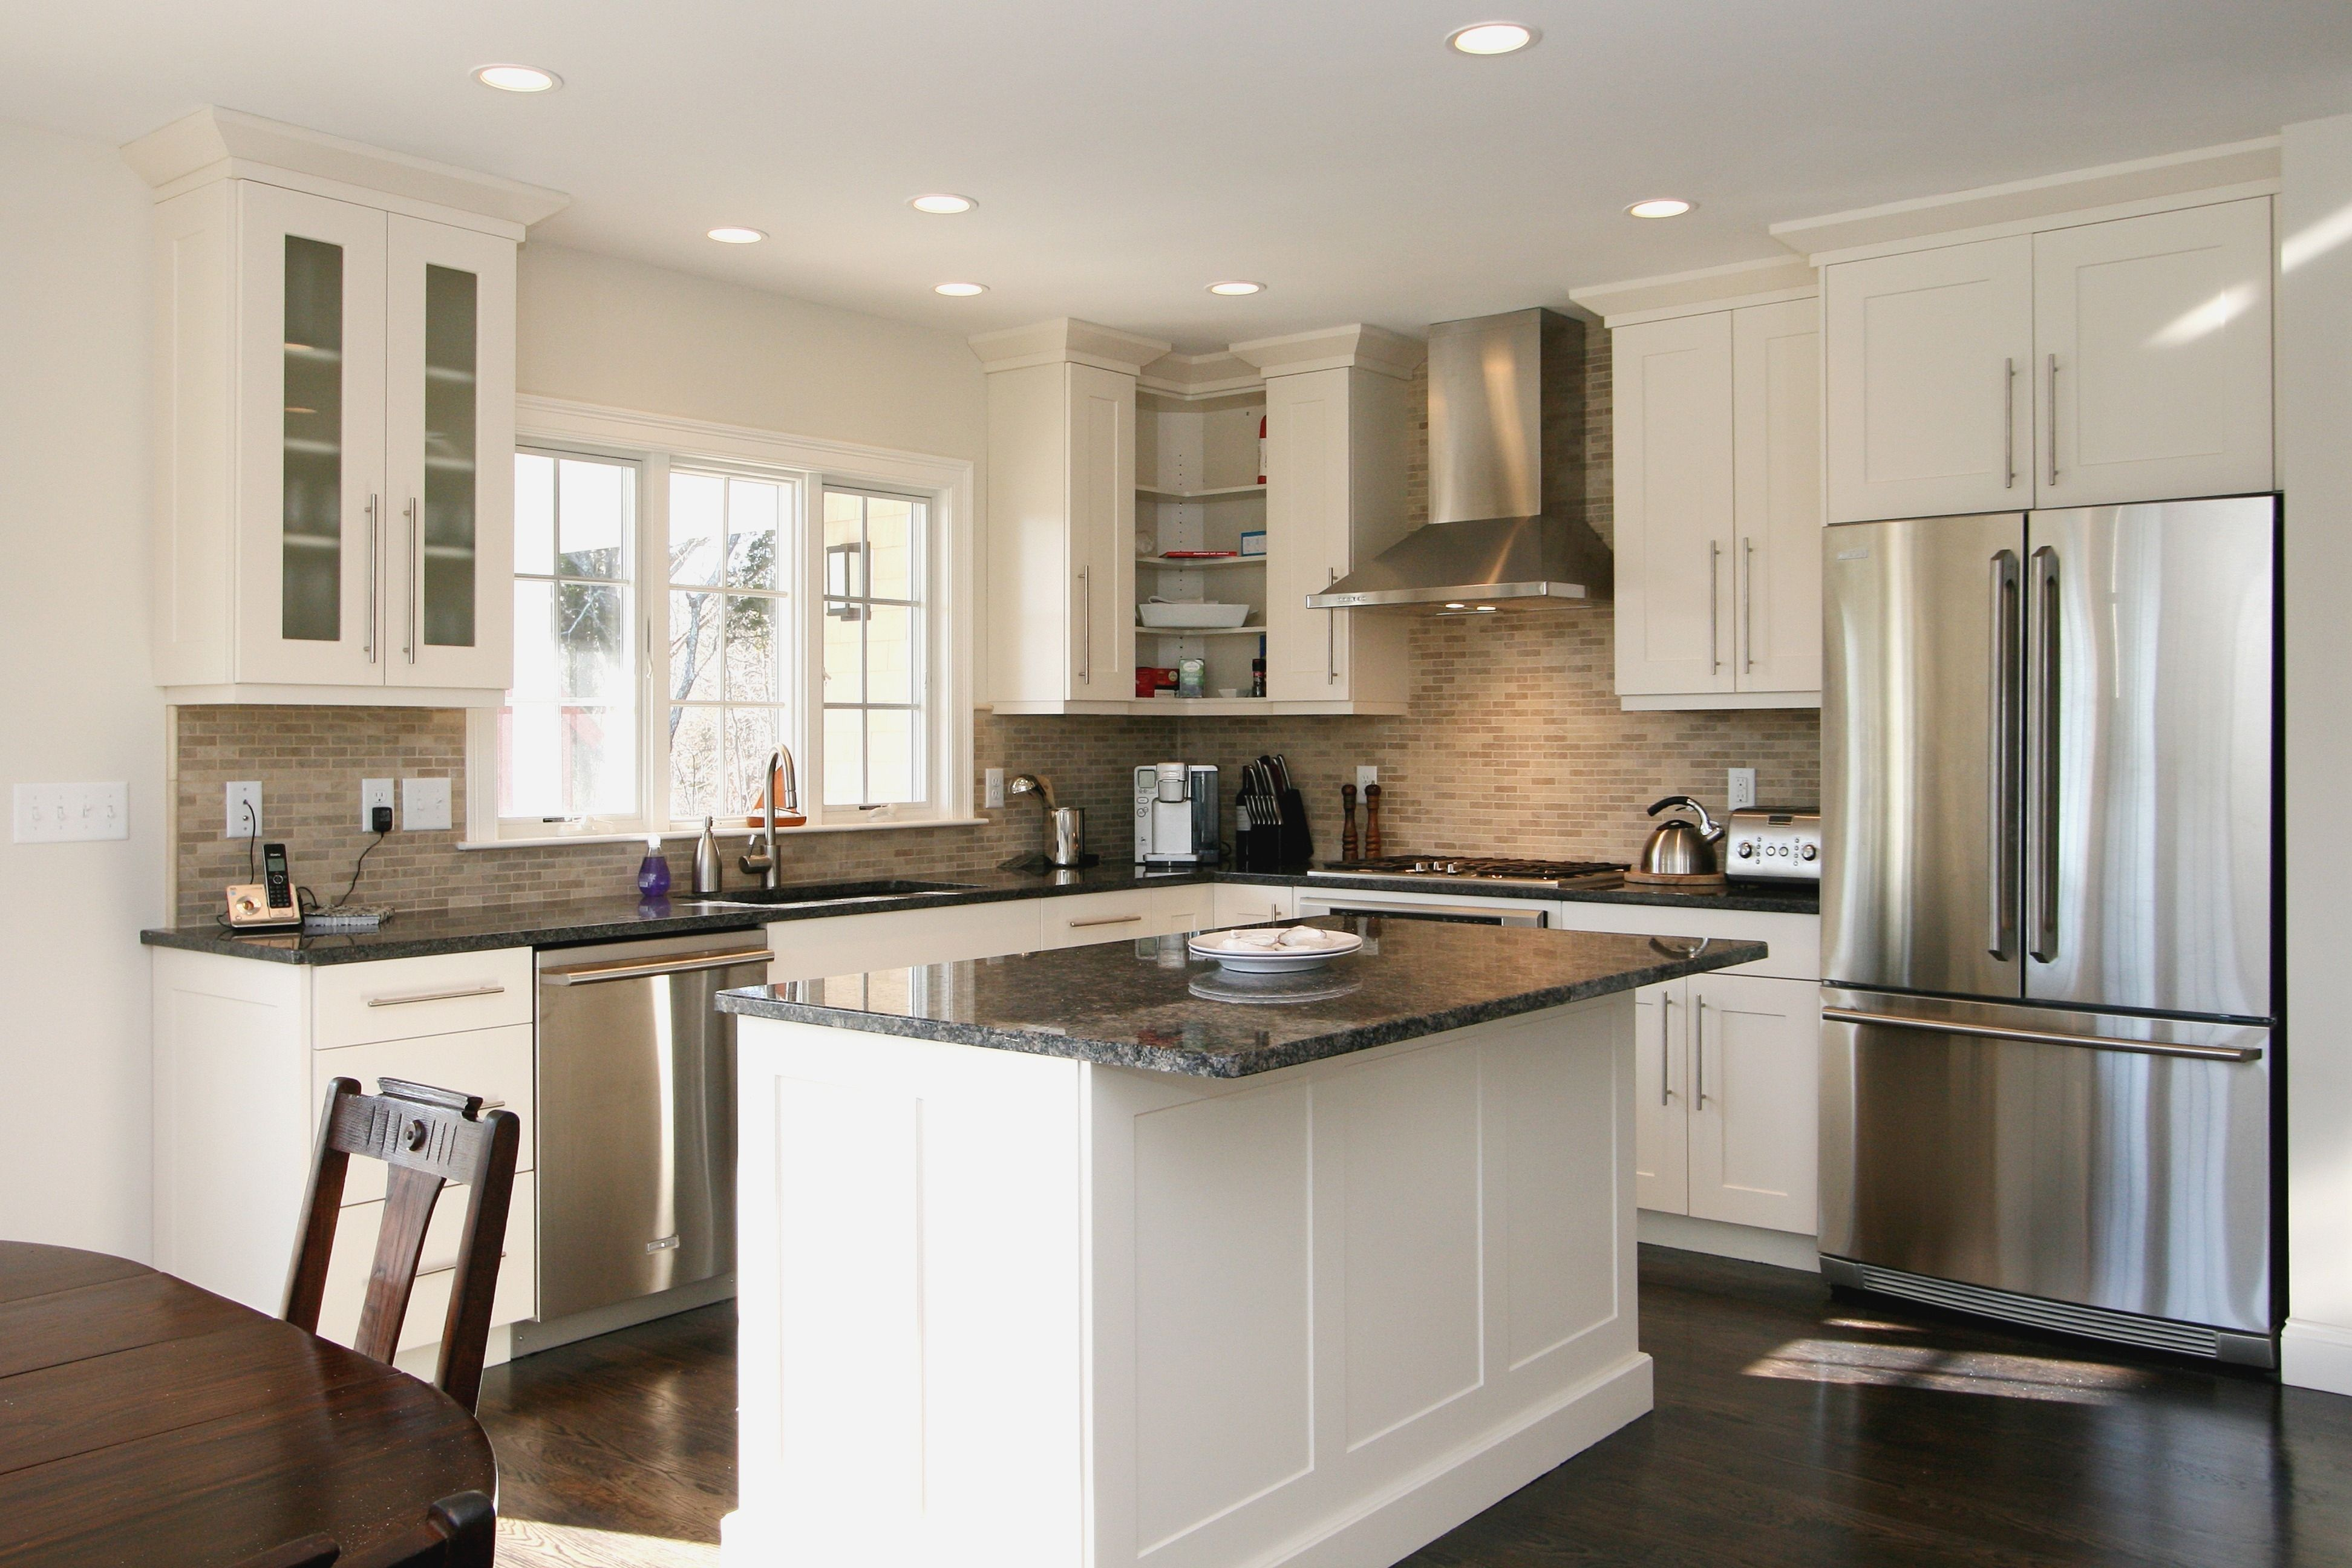 find cool l shaped kitchen design for your home now small kitchen layouts l shaped kitchen on kitchen island ideas small layout id=64724